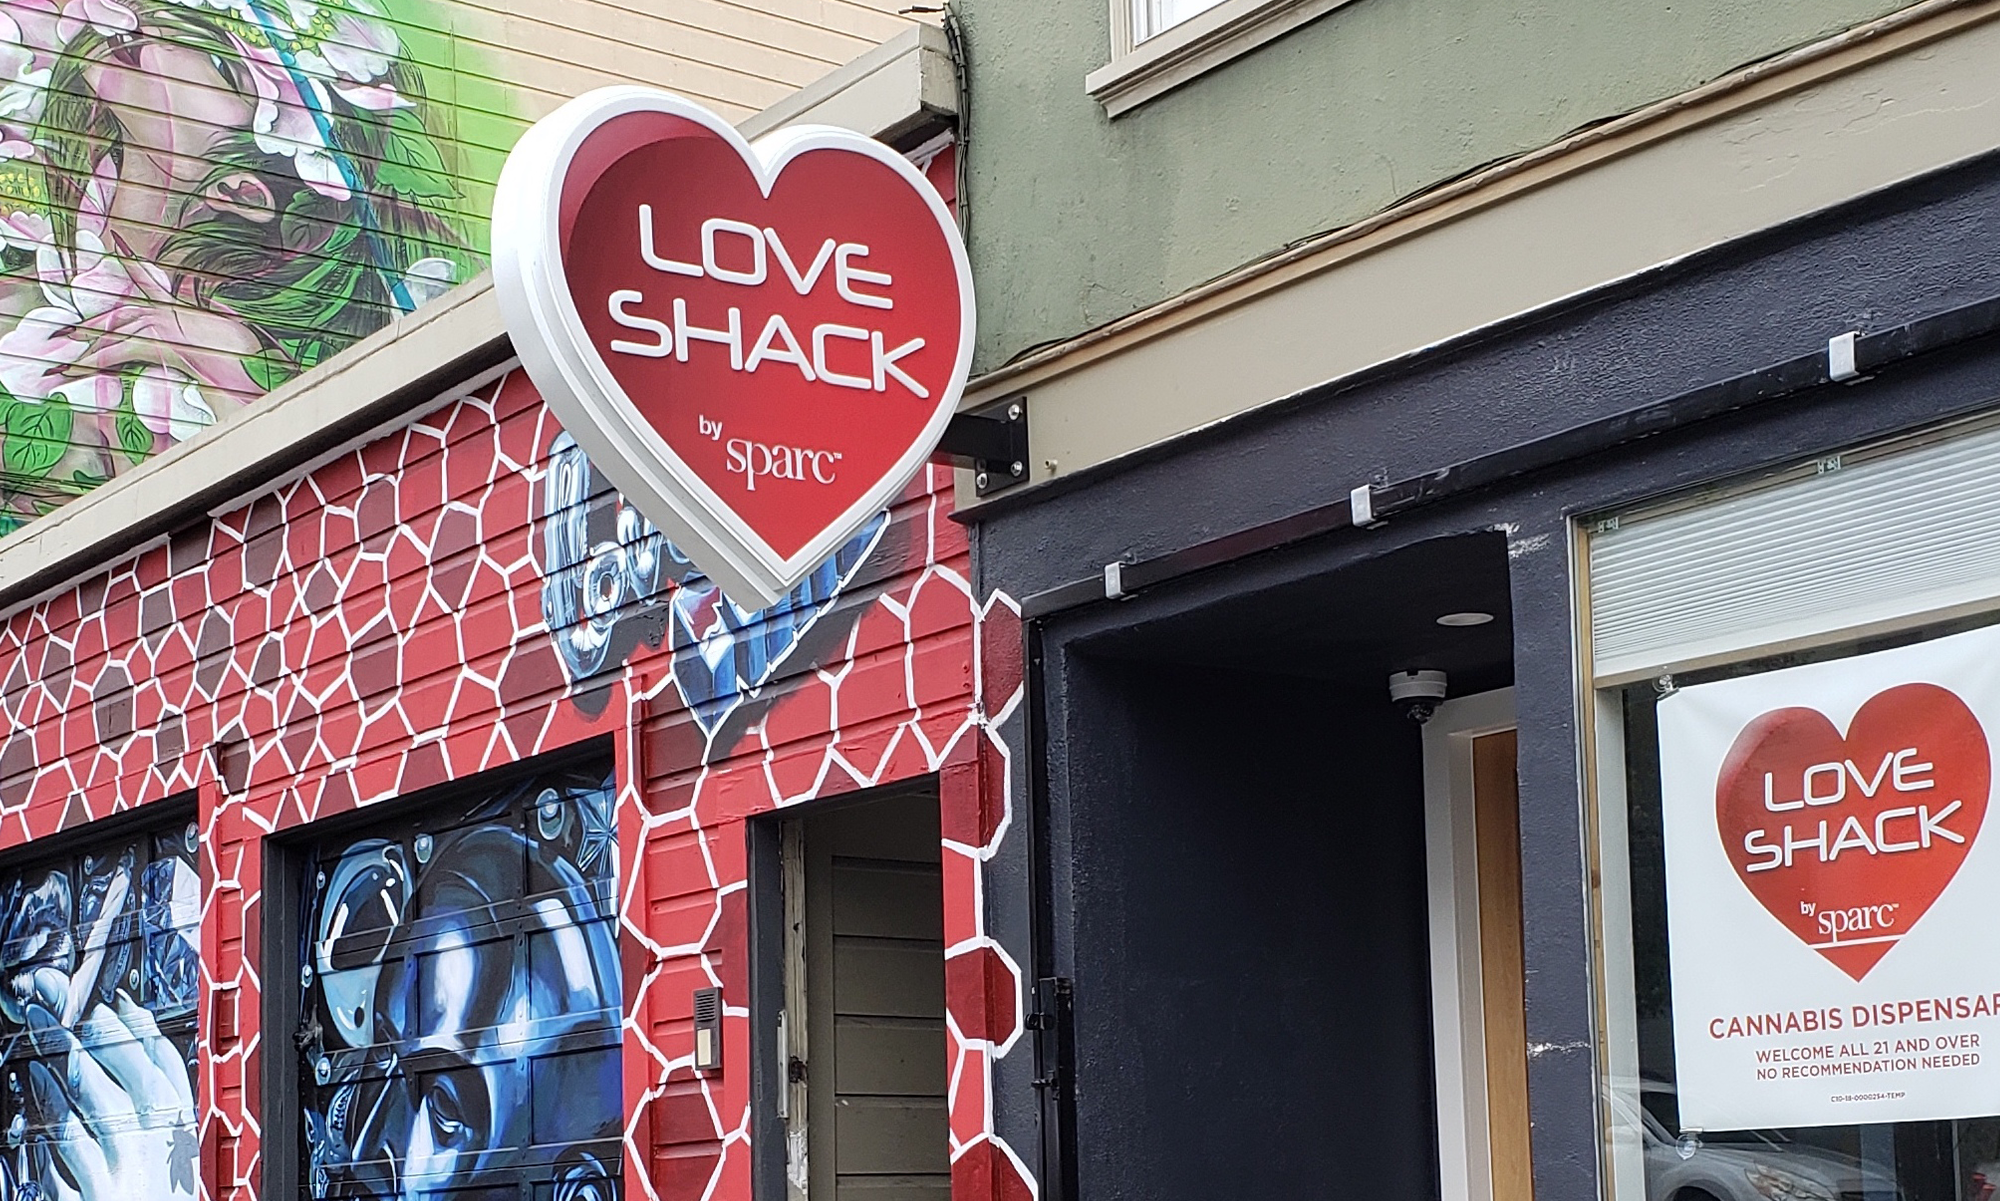 Love Shack by SPARC